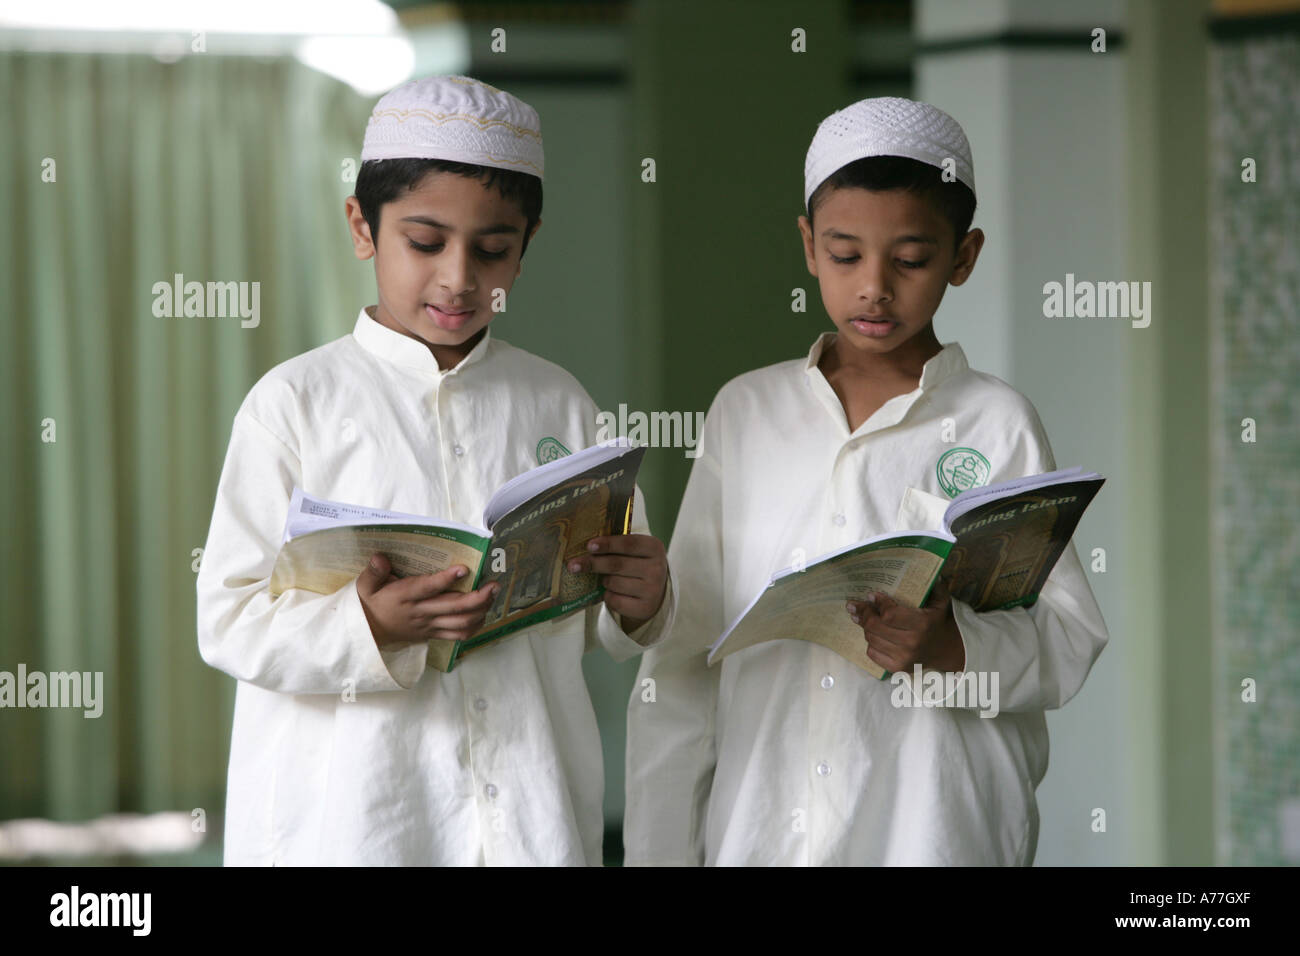 SGP Singapore Abdul Gafoor mosque in Little India Koran lessons for boys - Stock Image